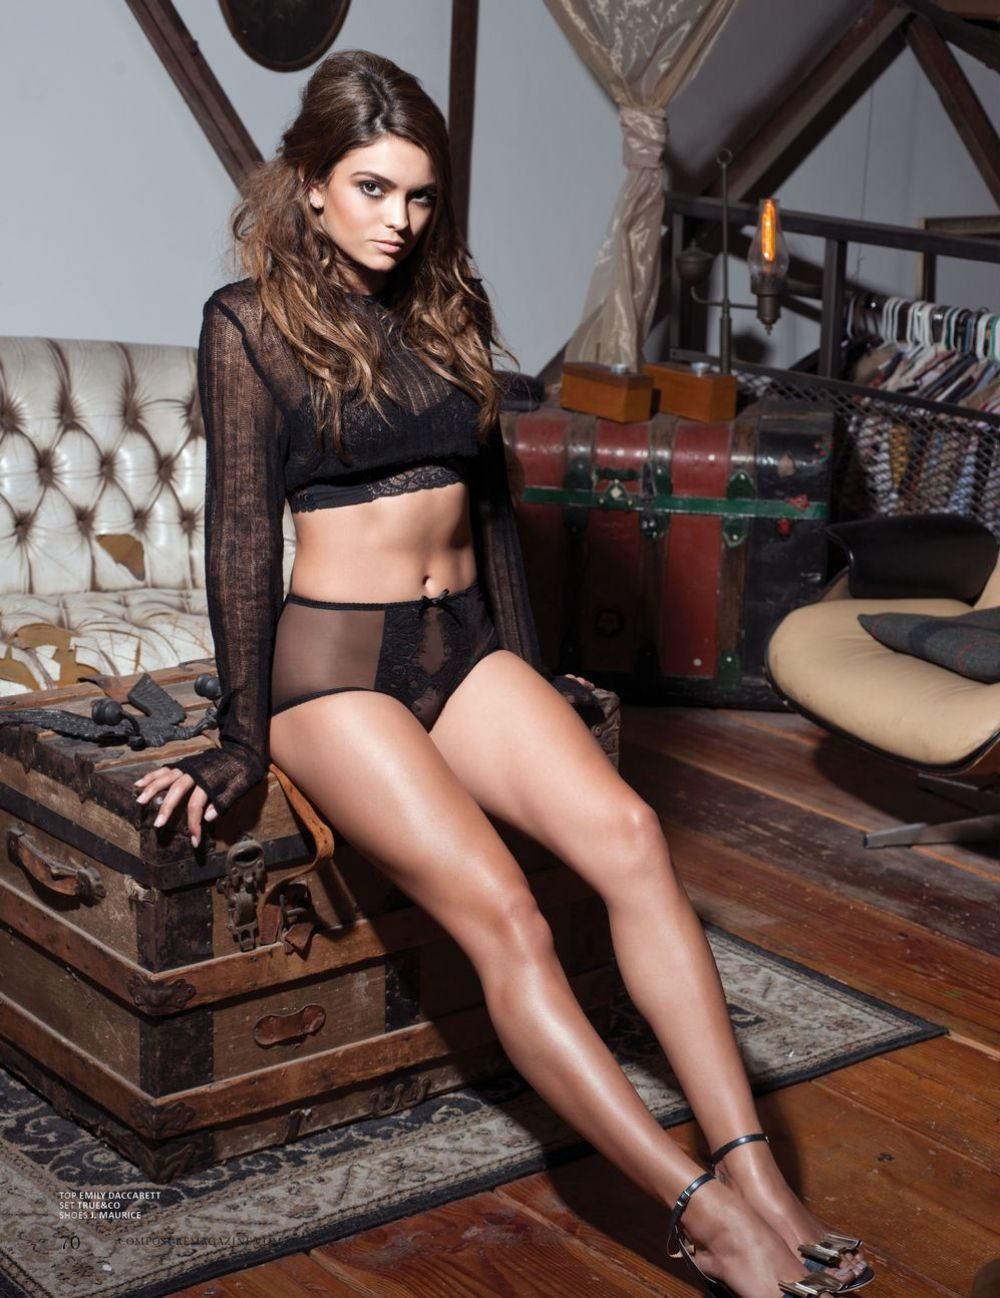 KYRA SANTORO in Composure Magazine, Issue #12 September 2016